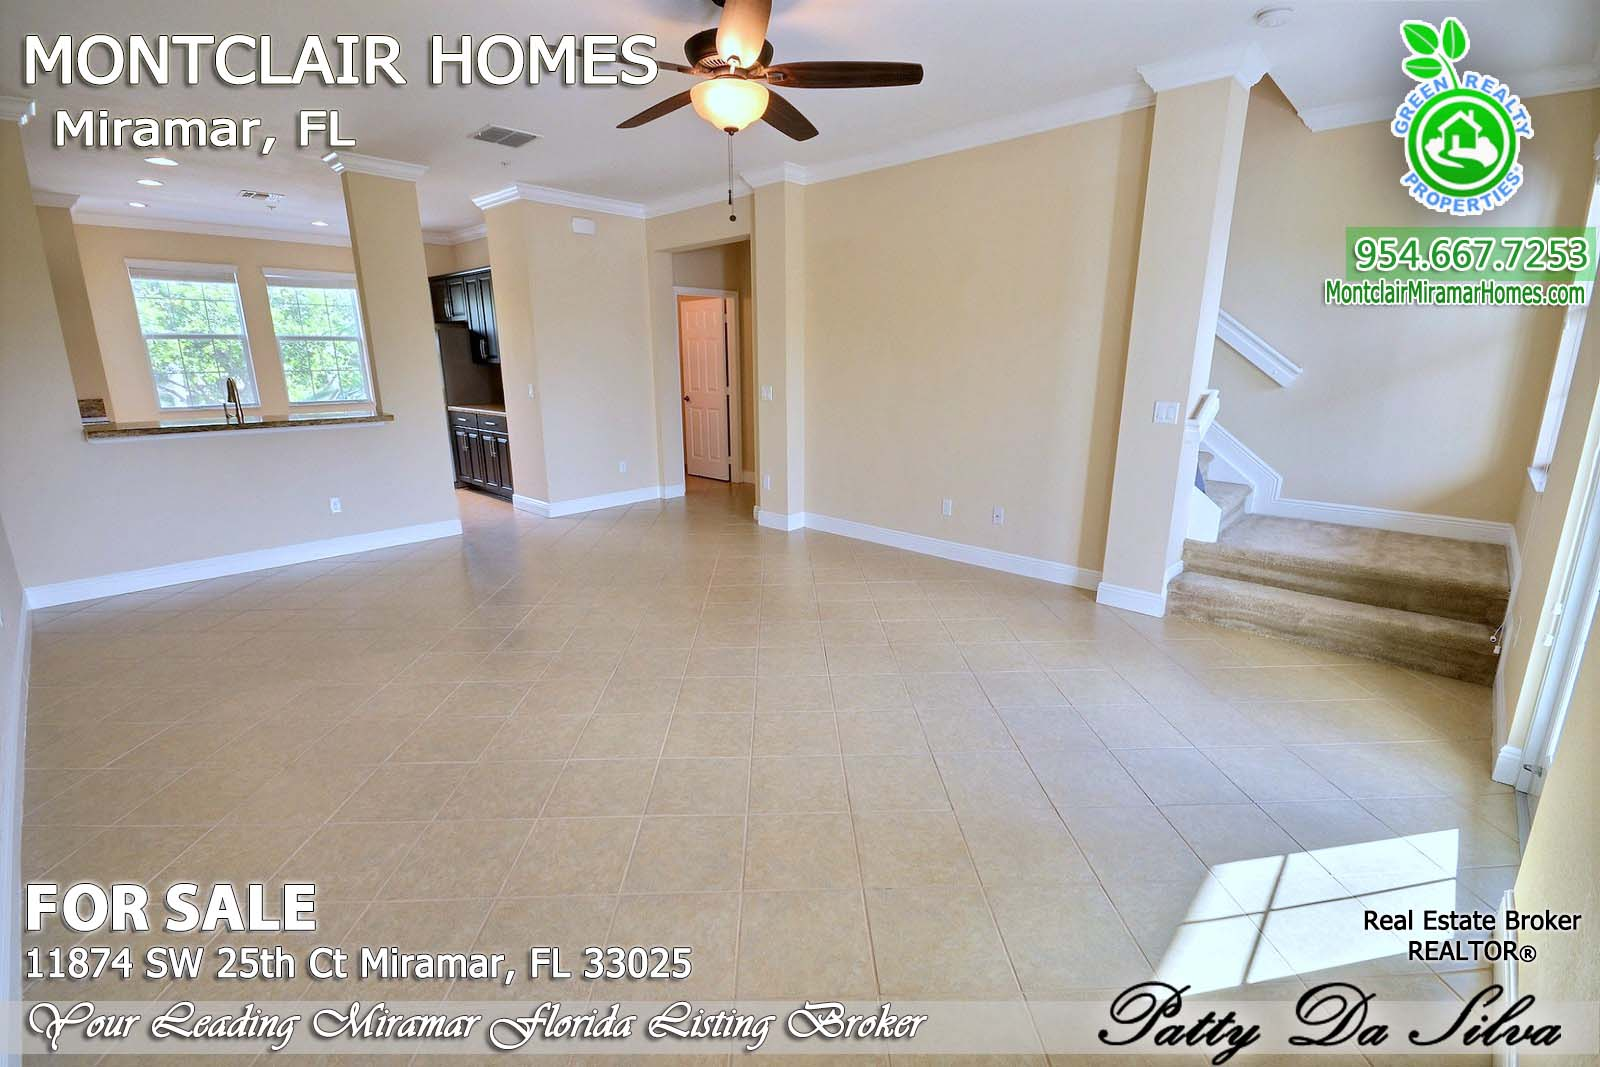 11874 SW 25 CT, Miramar FL 33025 - Montclair (6) - Copy